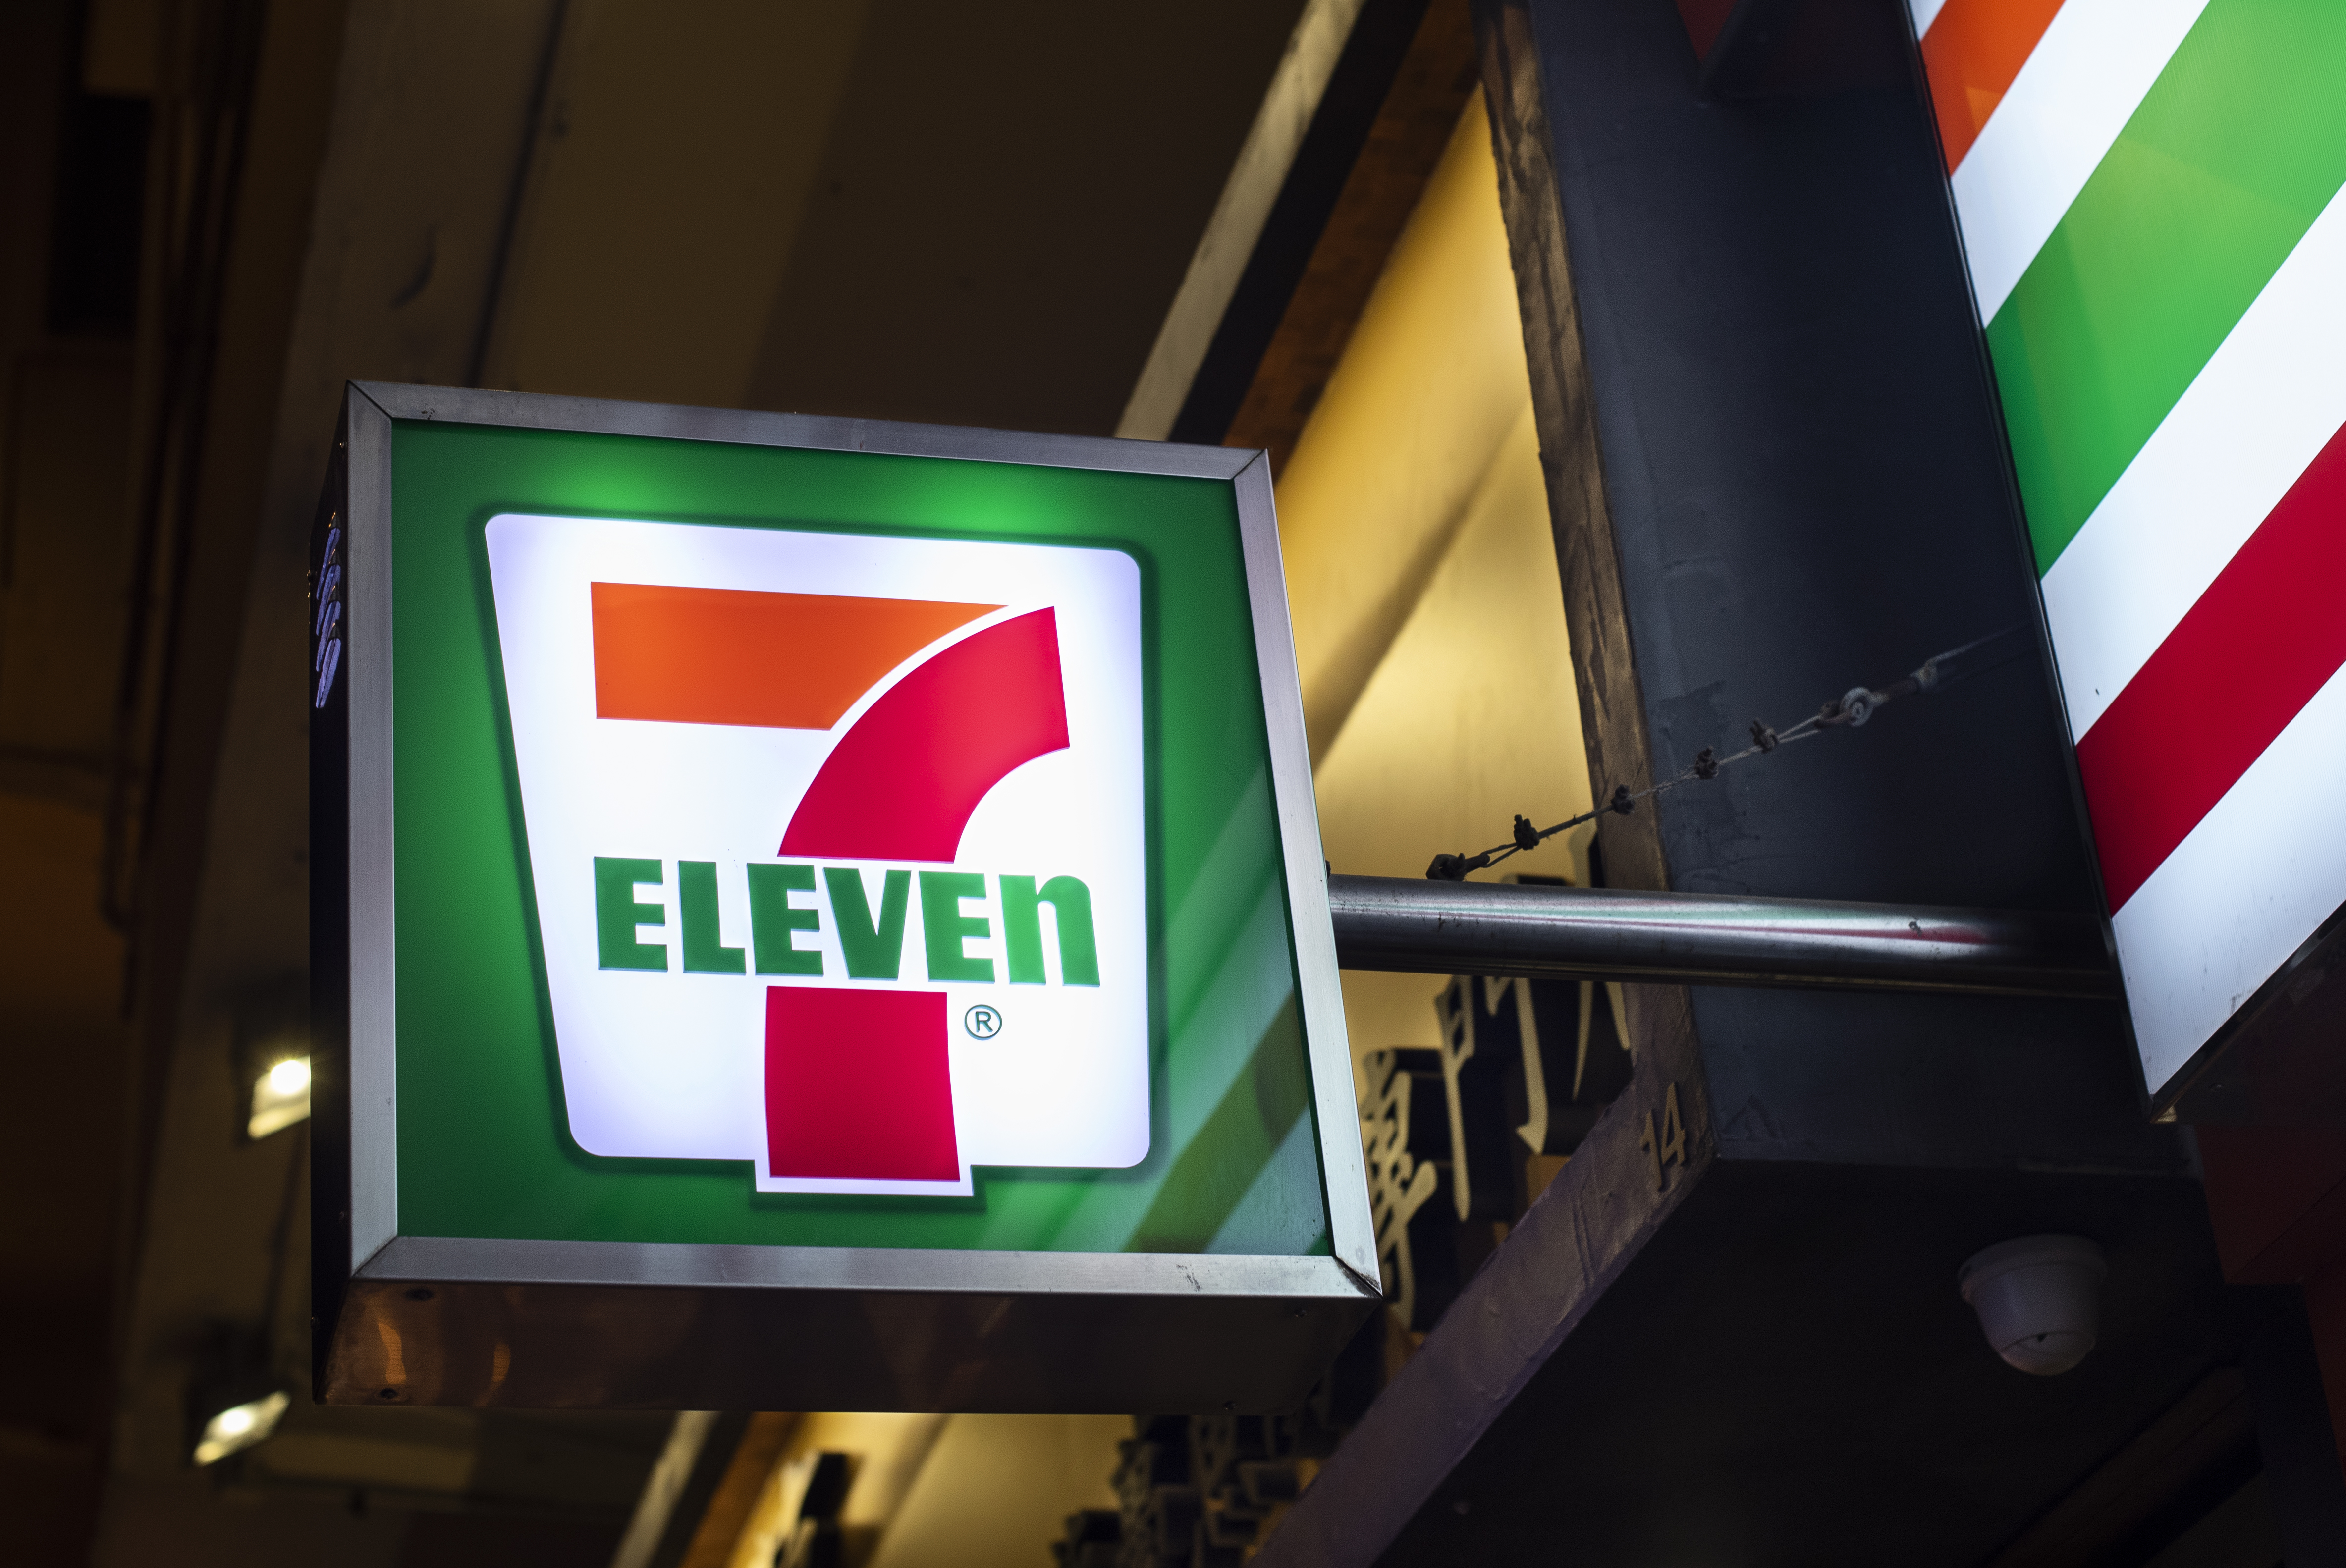 7-Eleven Japanese-owned American international chain of